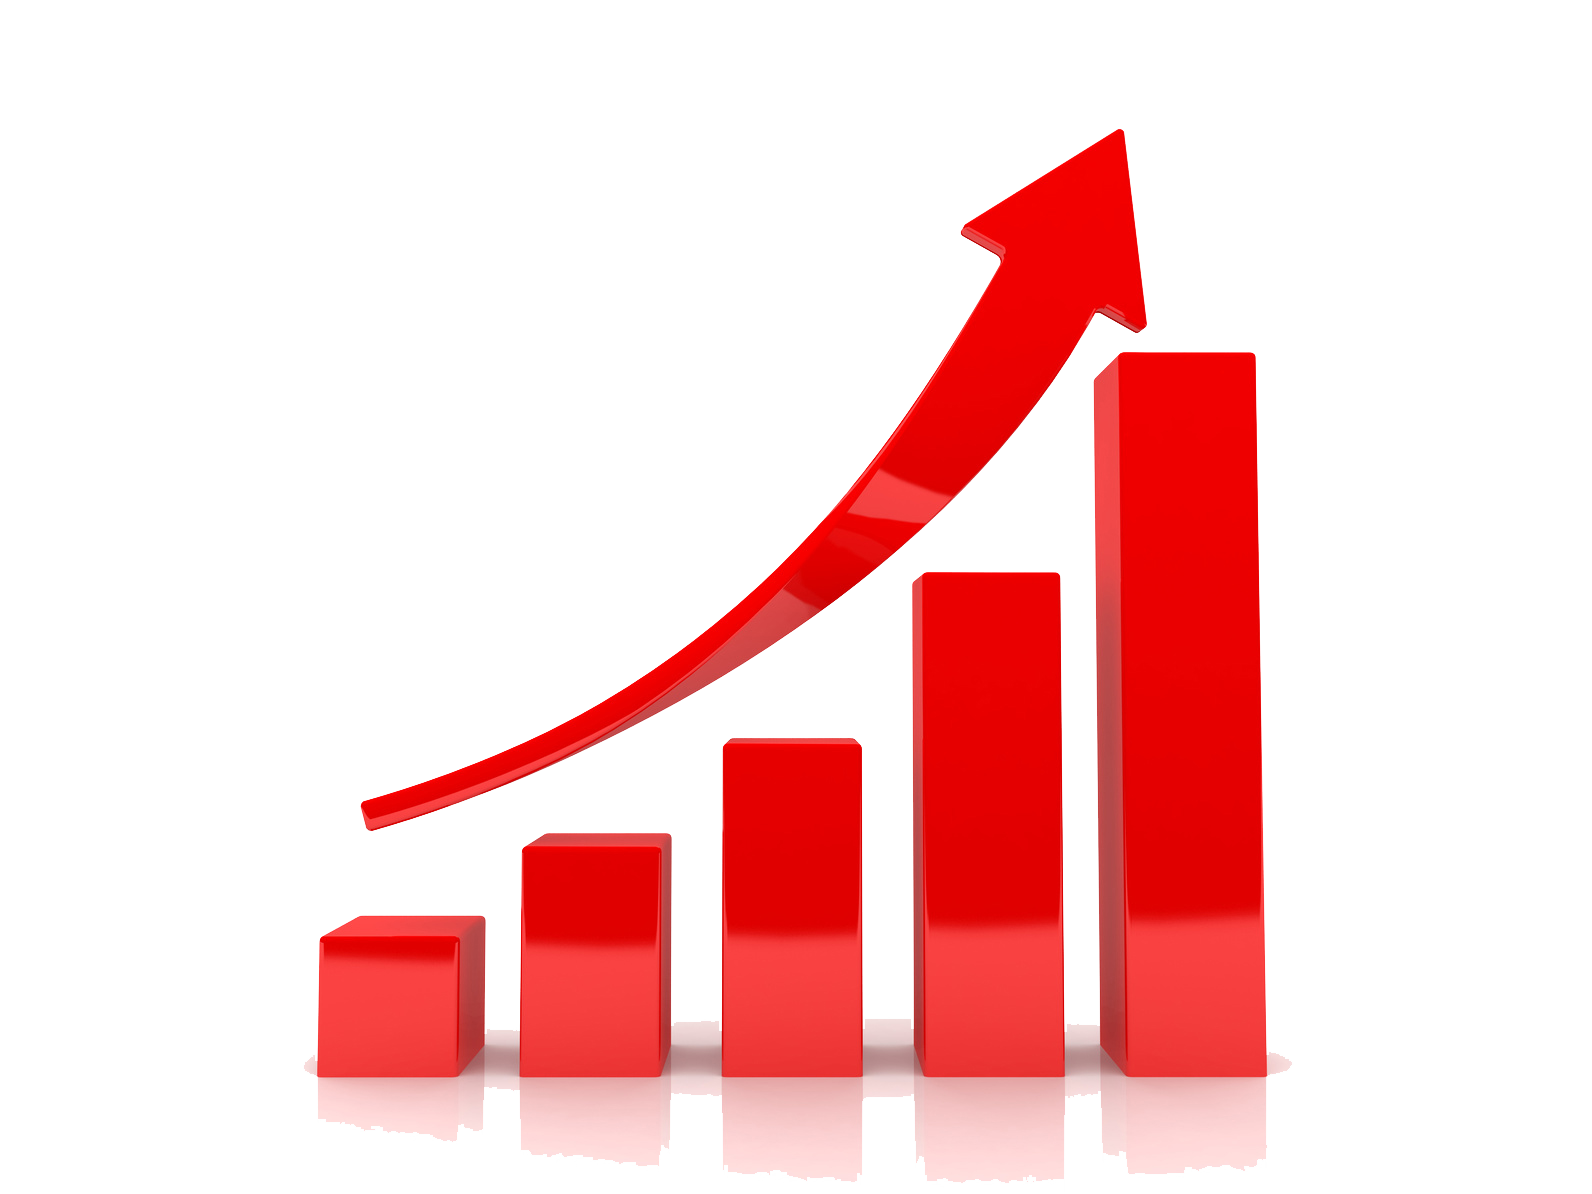 Graph clipart crisis. Business growth chart png